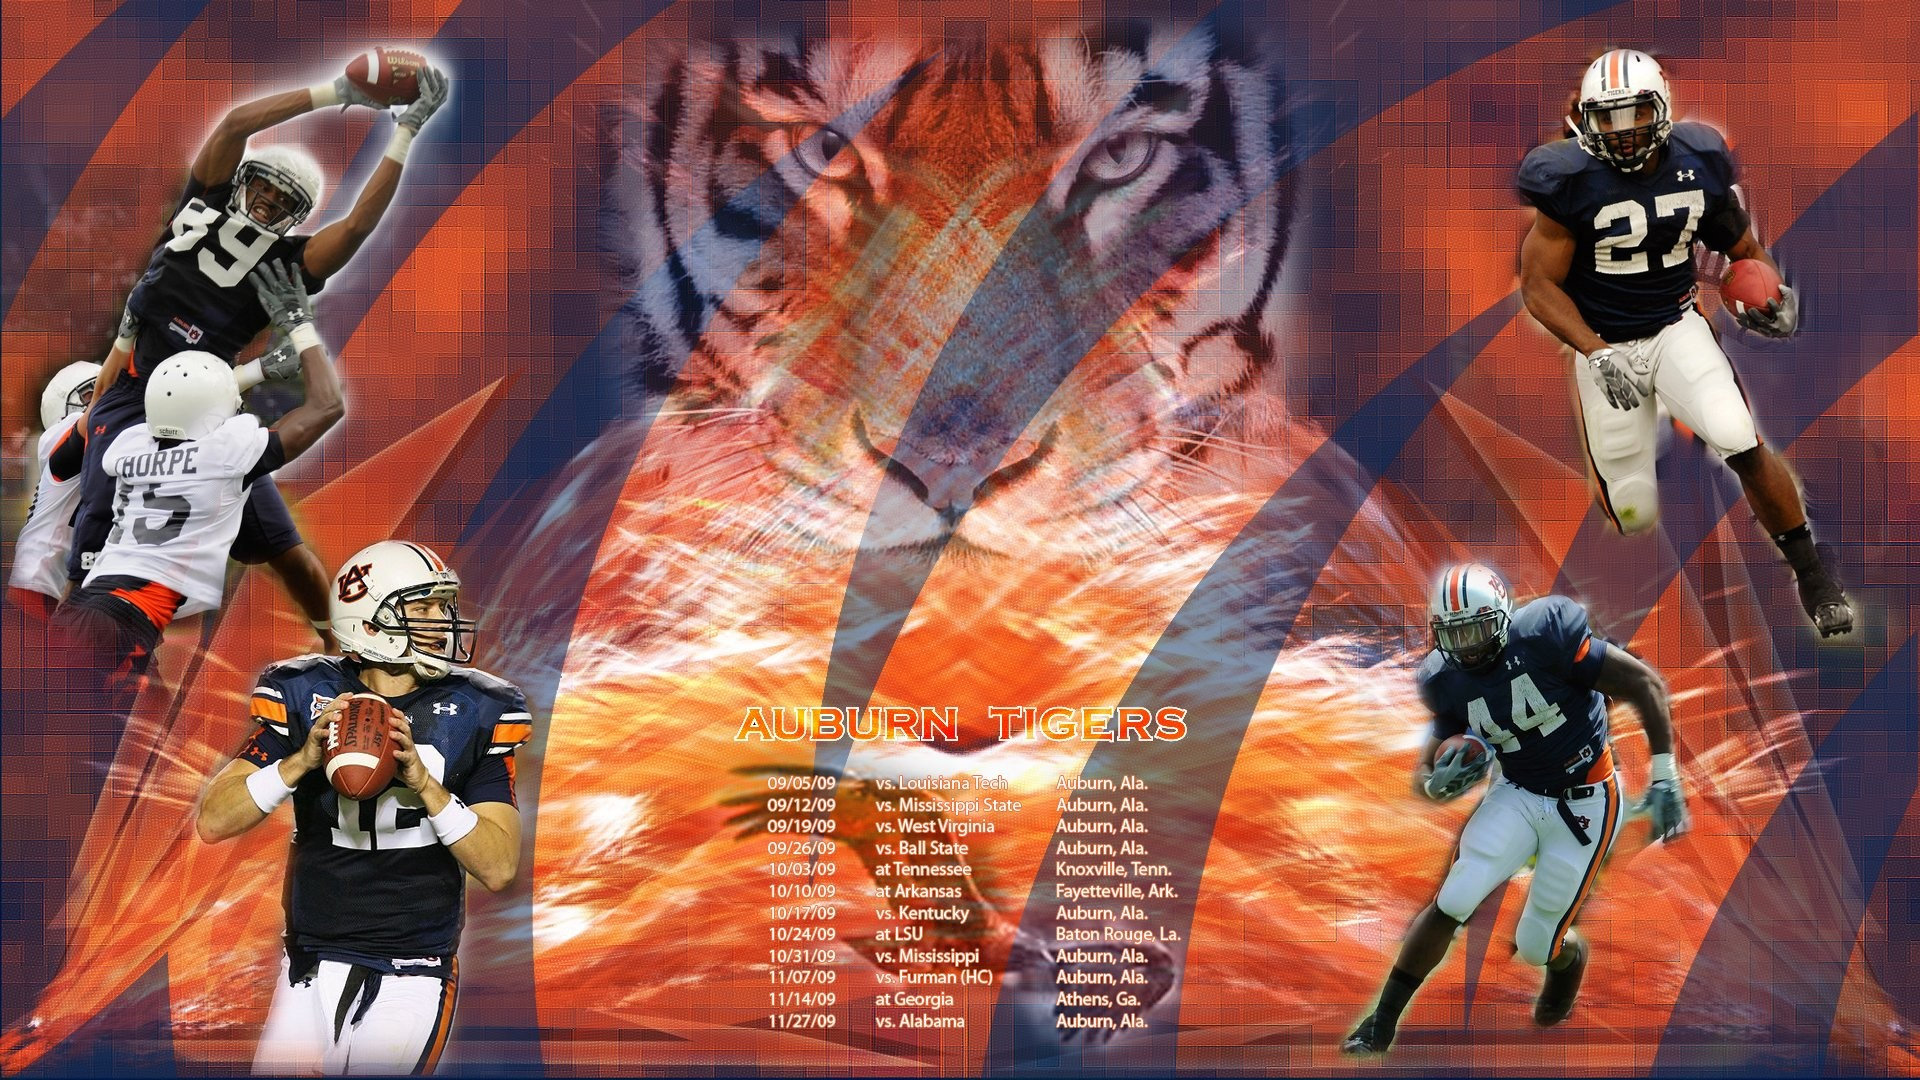 (69+ images) Screensavers Wallpaper Football and Auburn